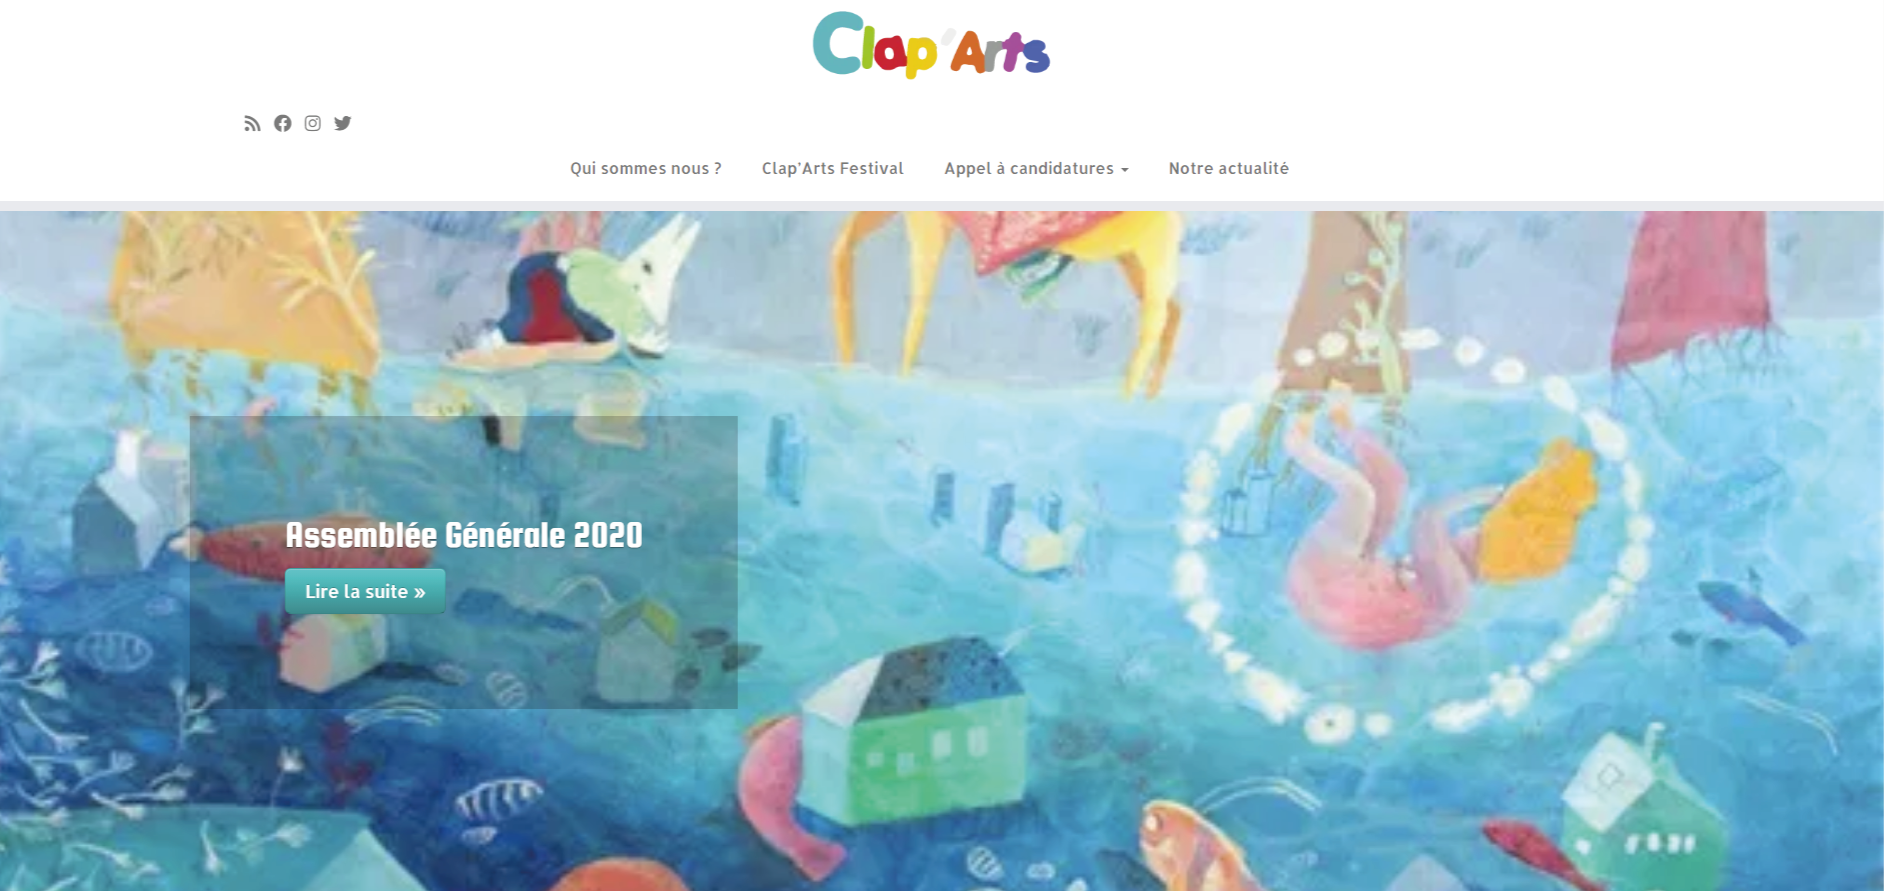 claparts site association - Clap'Arts, site vitrine